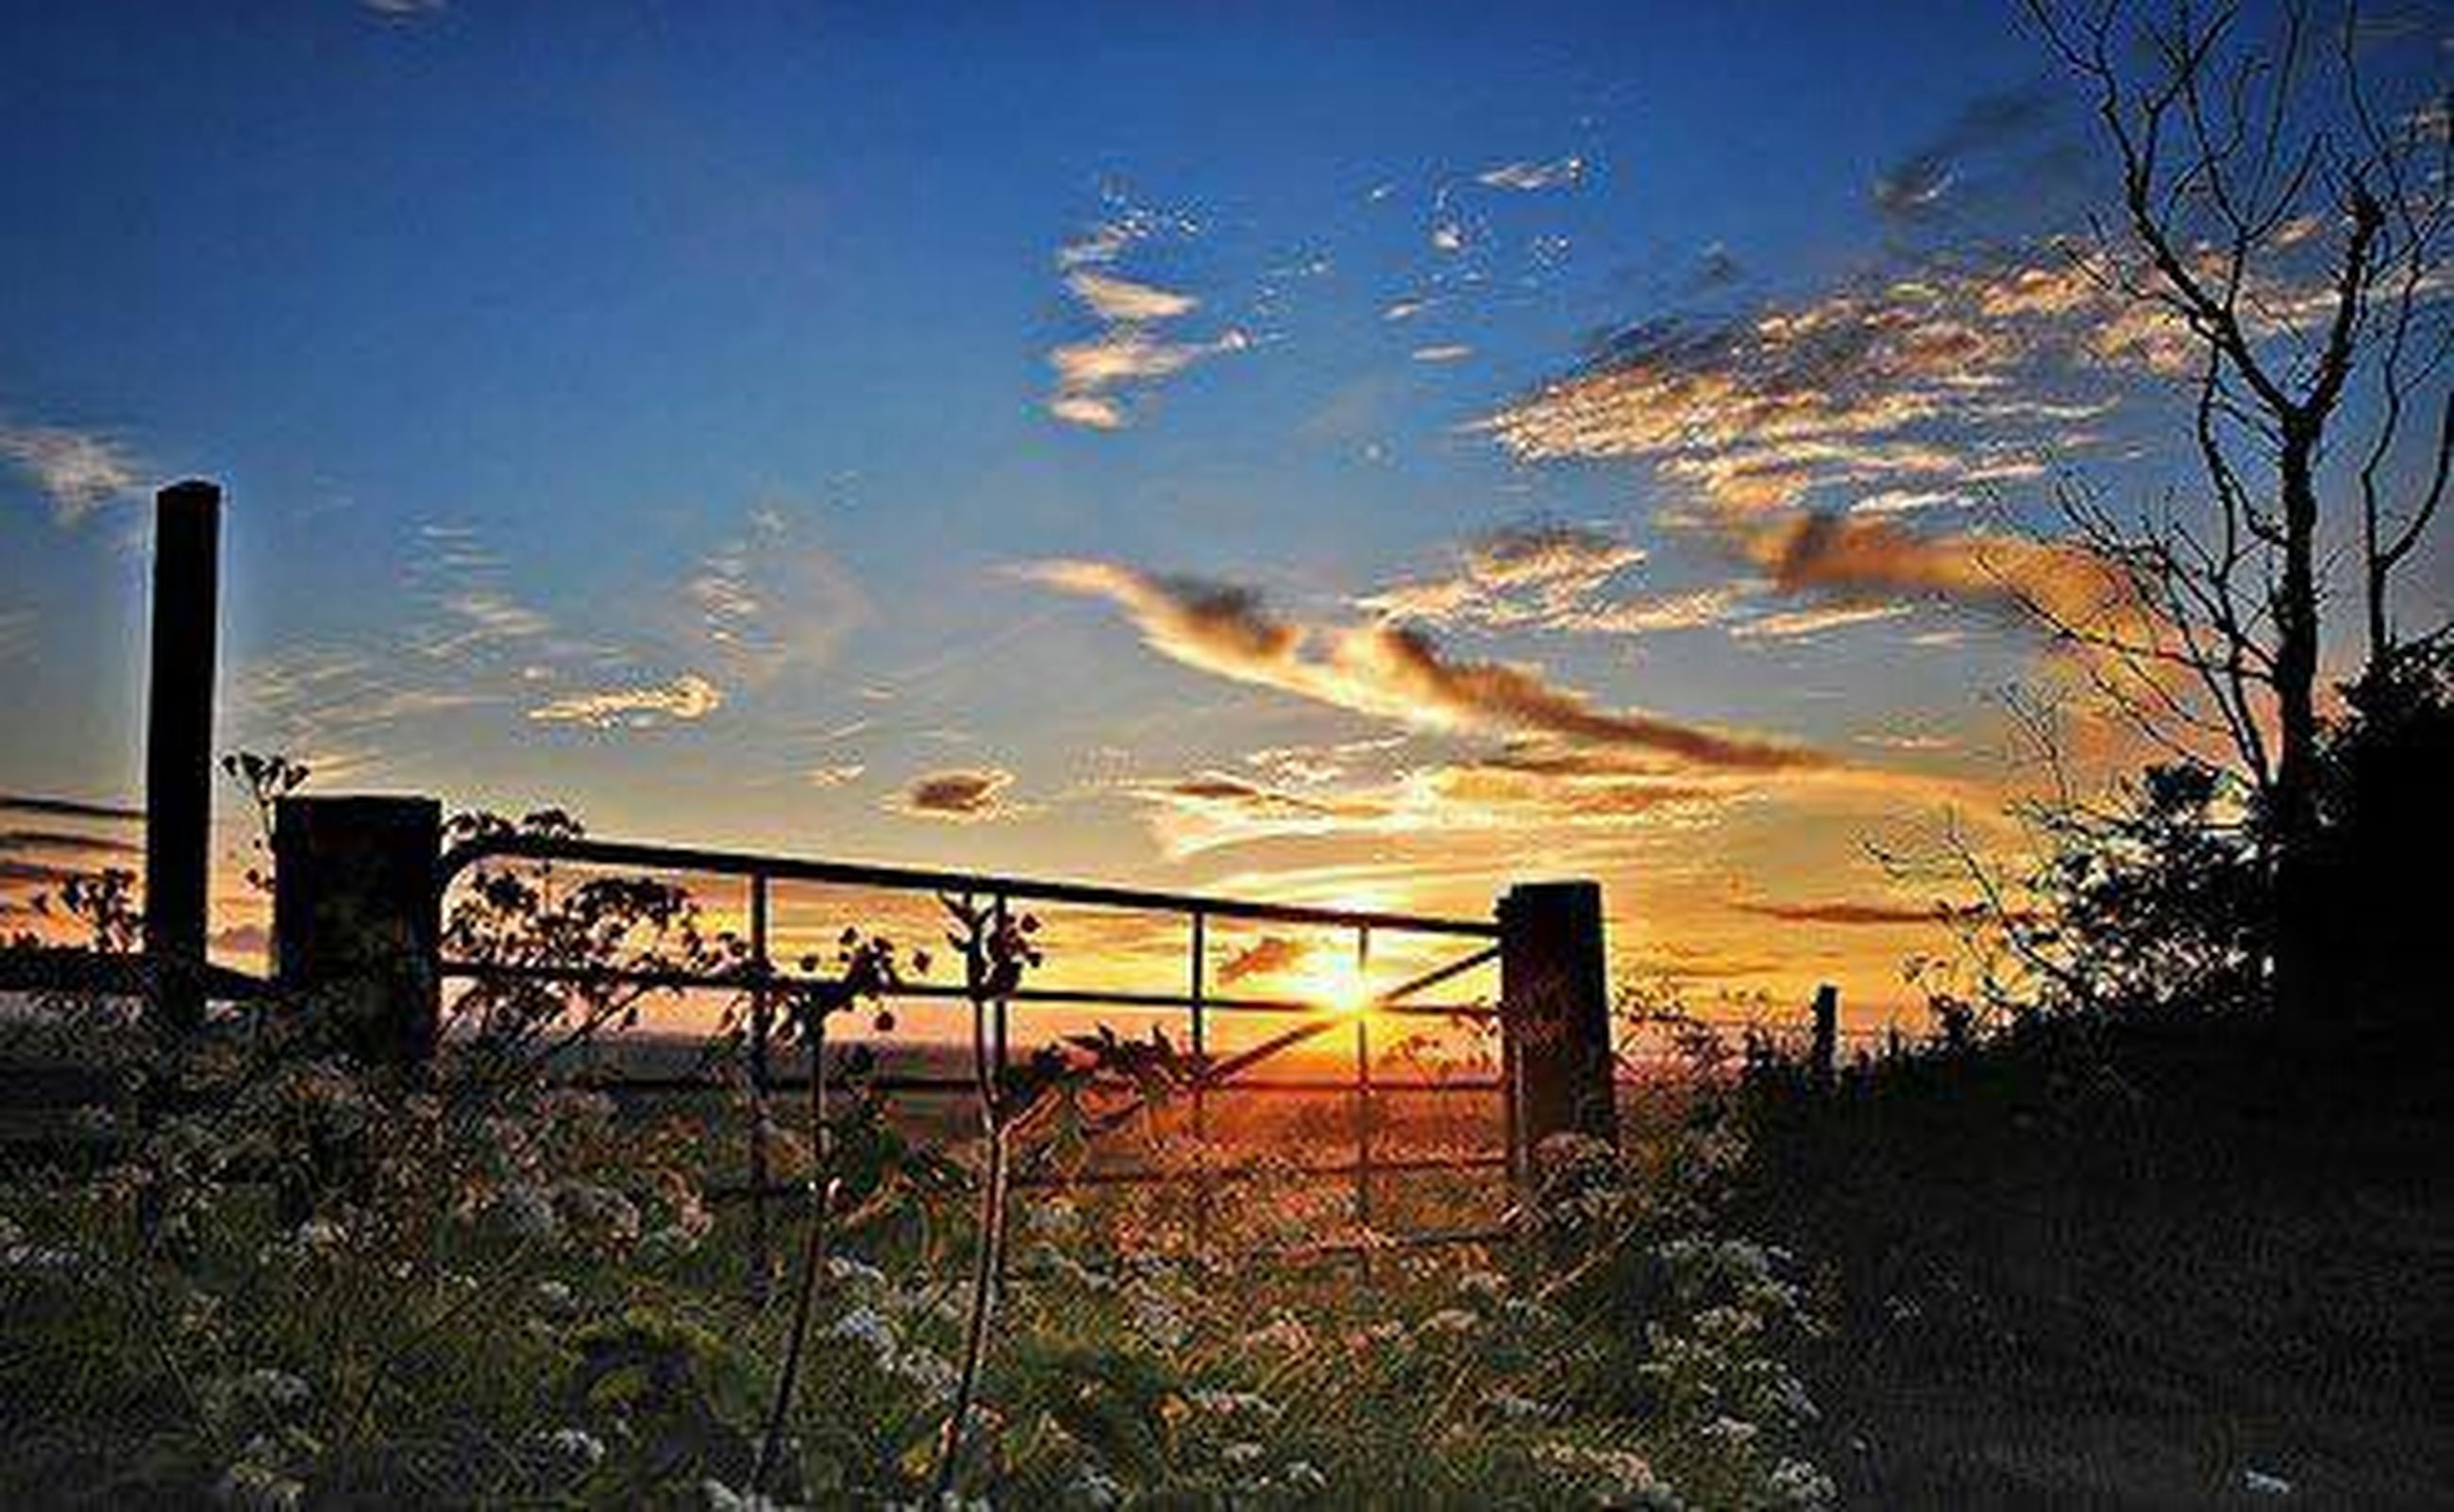 sky, blue, tranquility, sunset, fence, plant, railing, nature, tranquil scene, cloud - sky, scenics, beauty in nature, growth, cloud, field, outdoors, tree, landscape, no people, grass